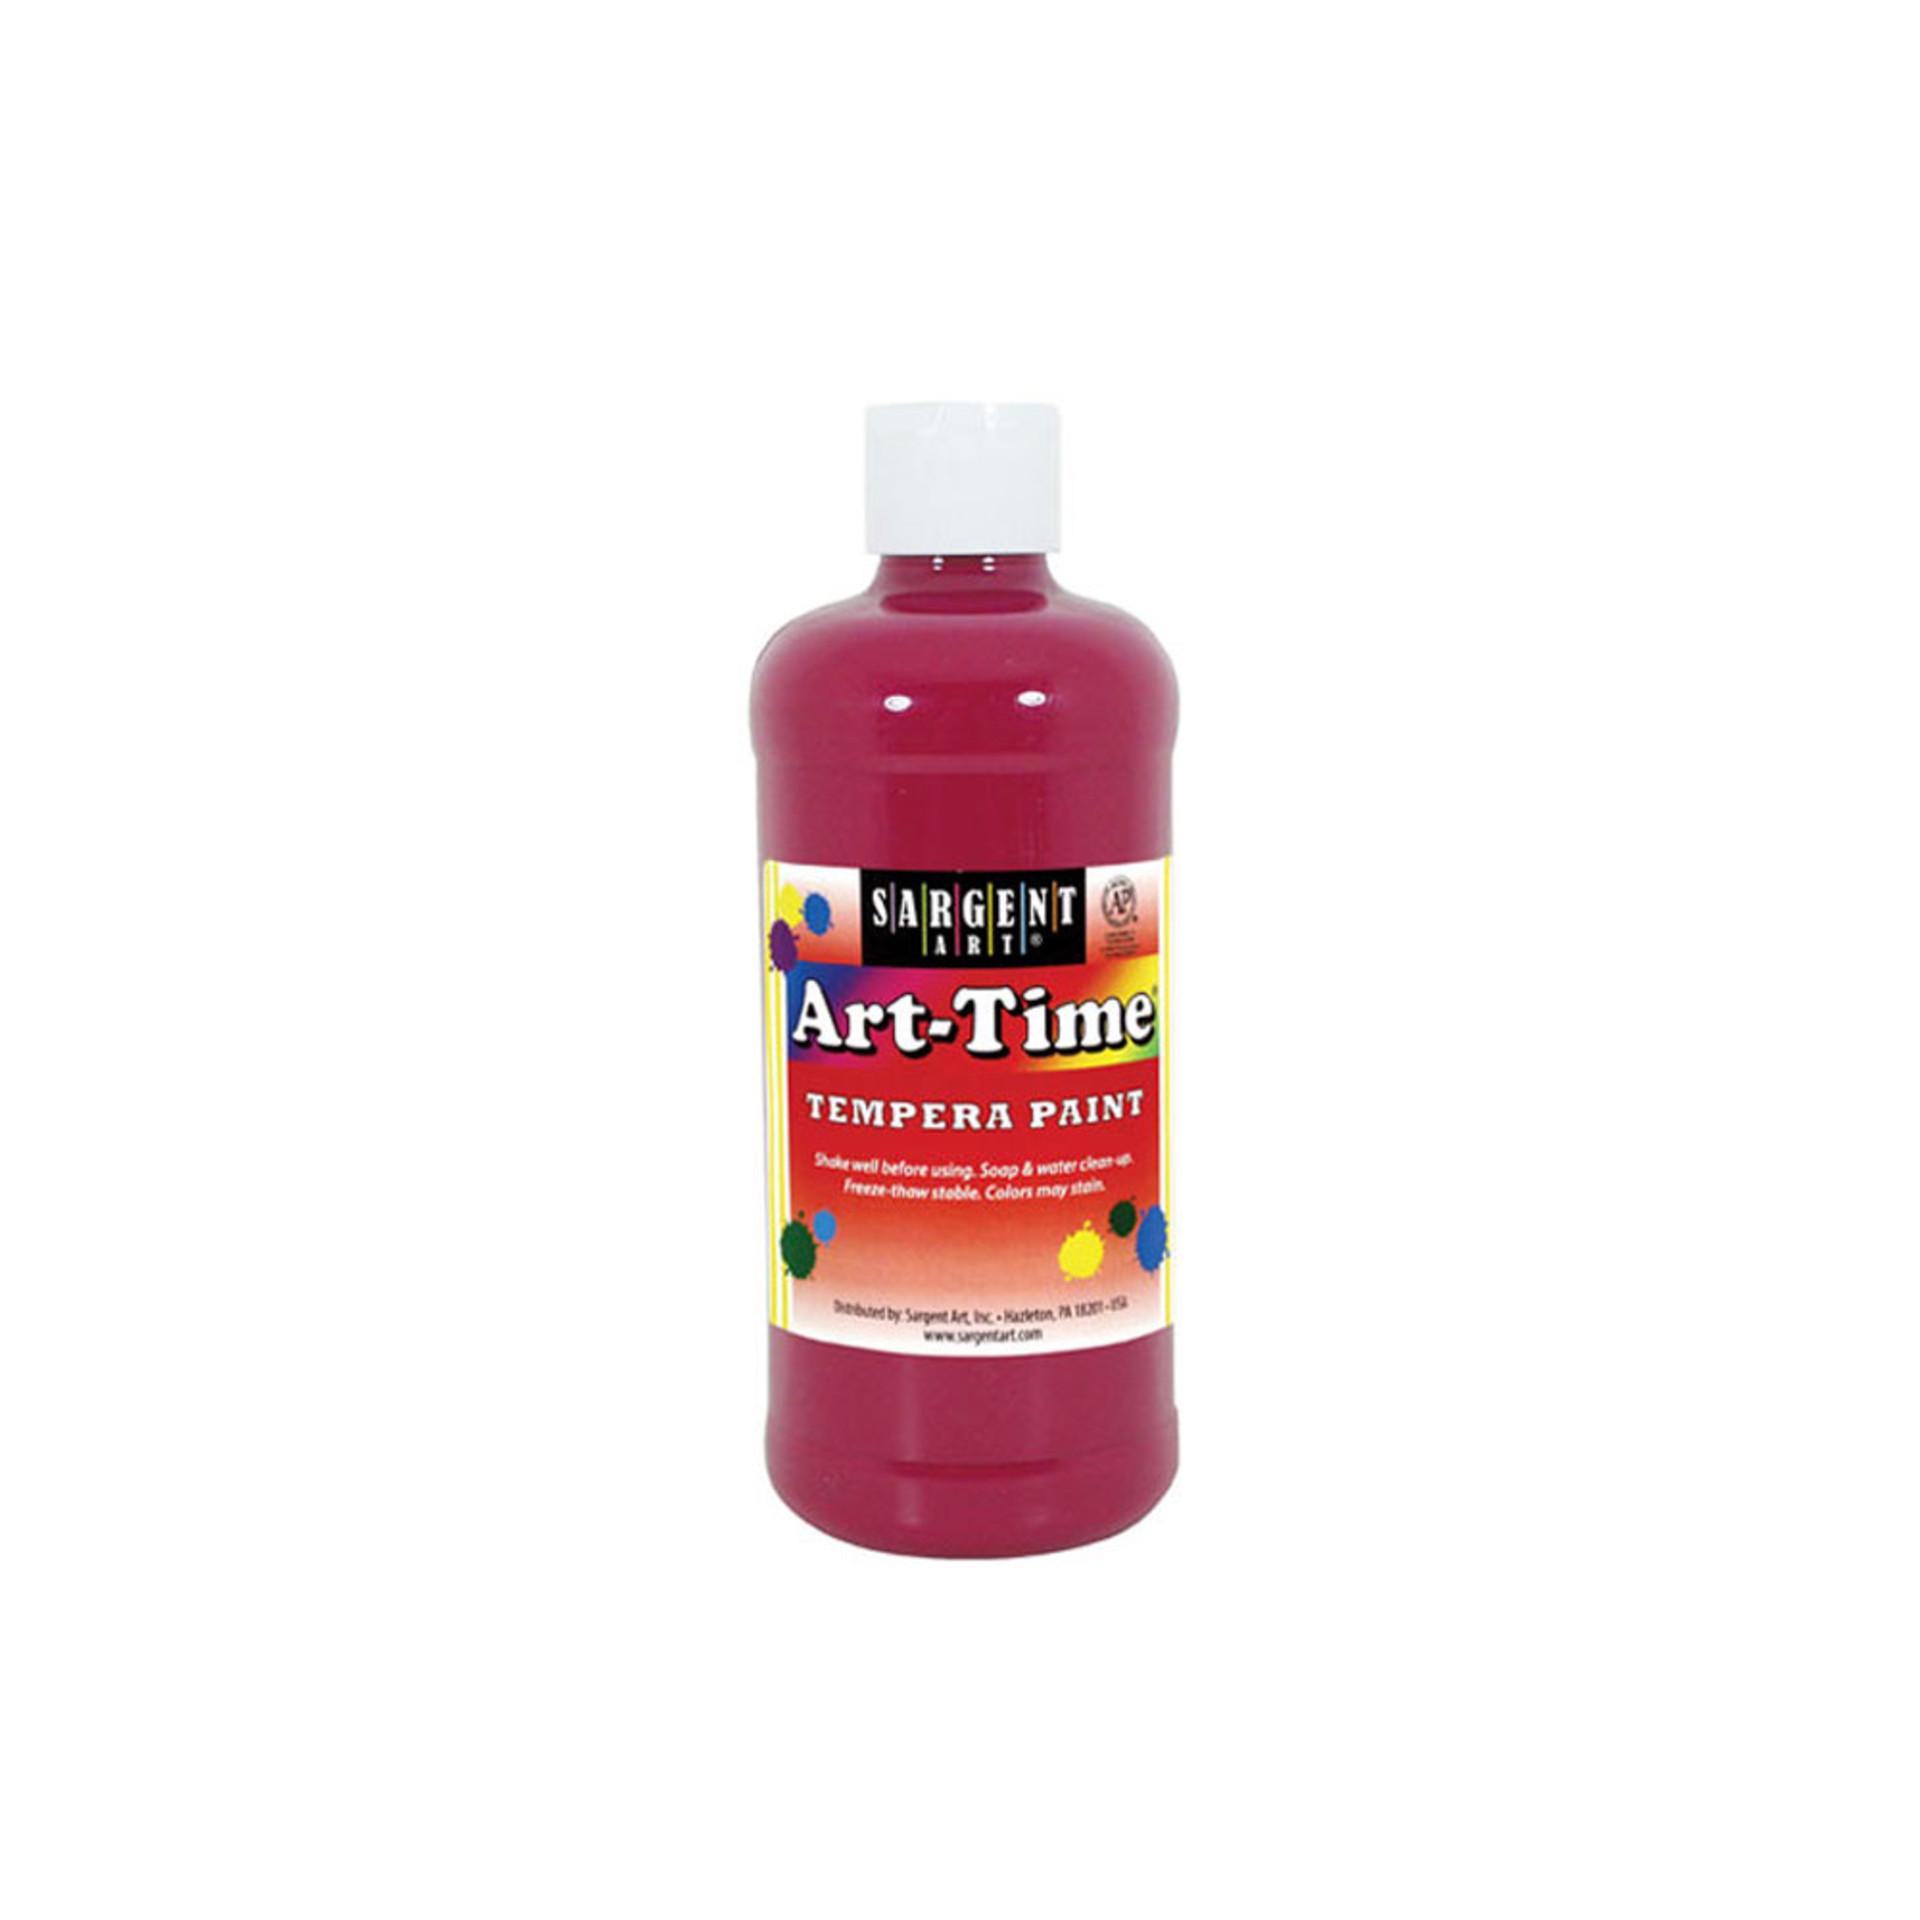 Sargent Art Time 8oz. Tempera Paint – Magenta